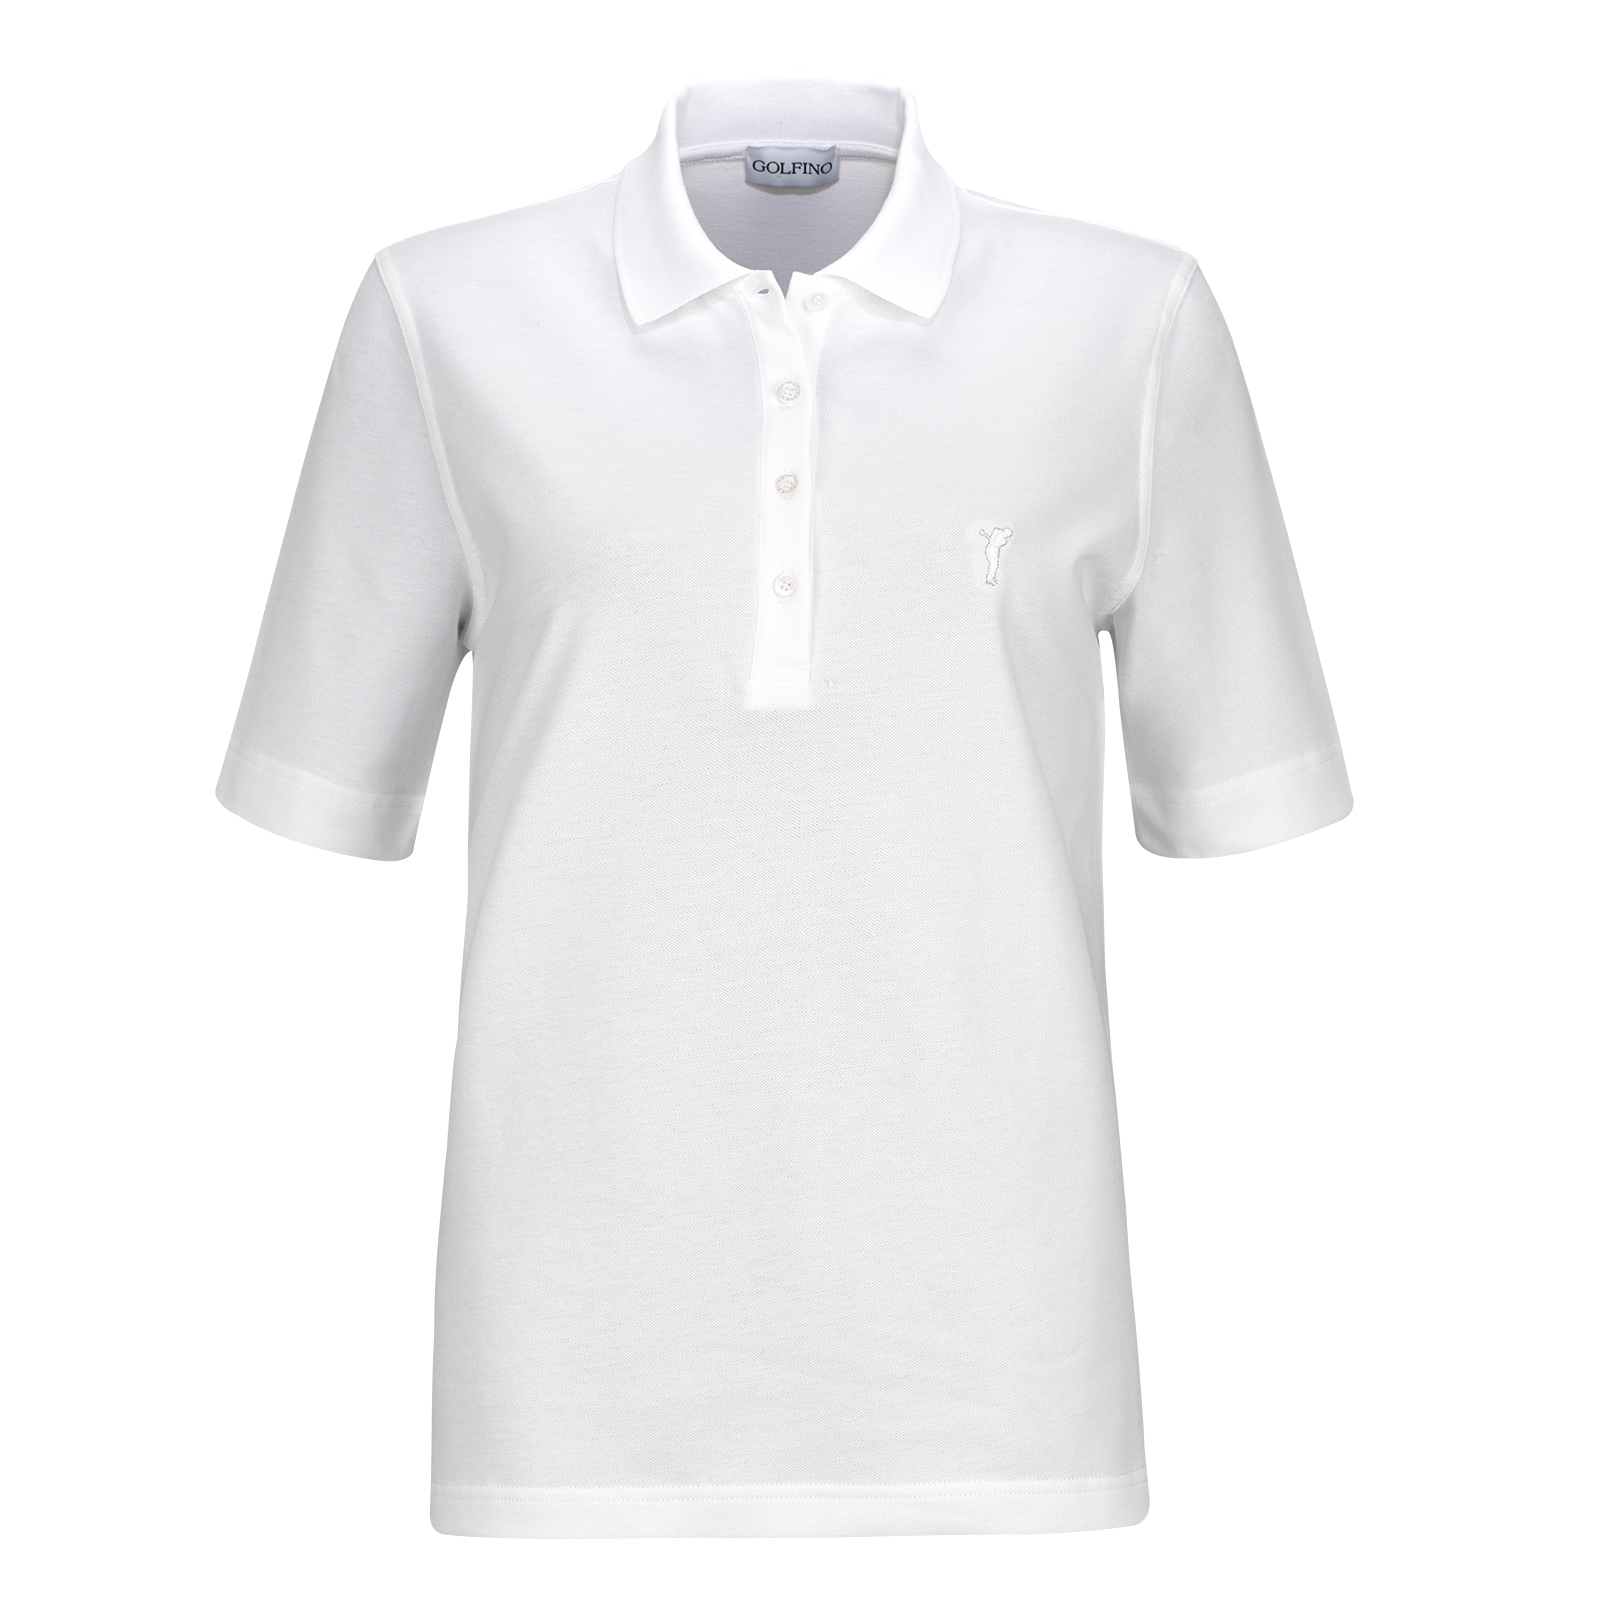 Basic Cotton Blend Ladies' Short Sleeve Golf polo shirt with stretch function